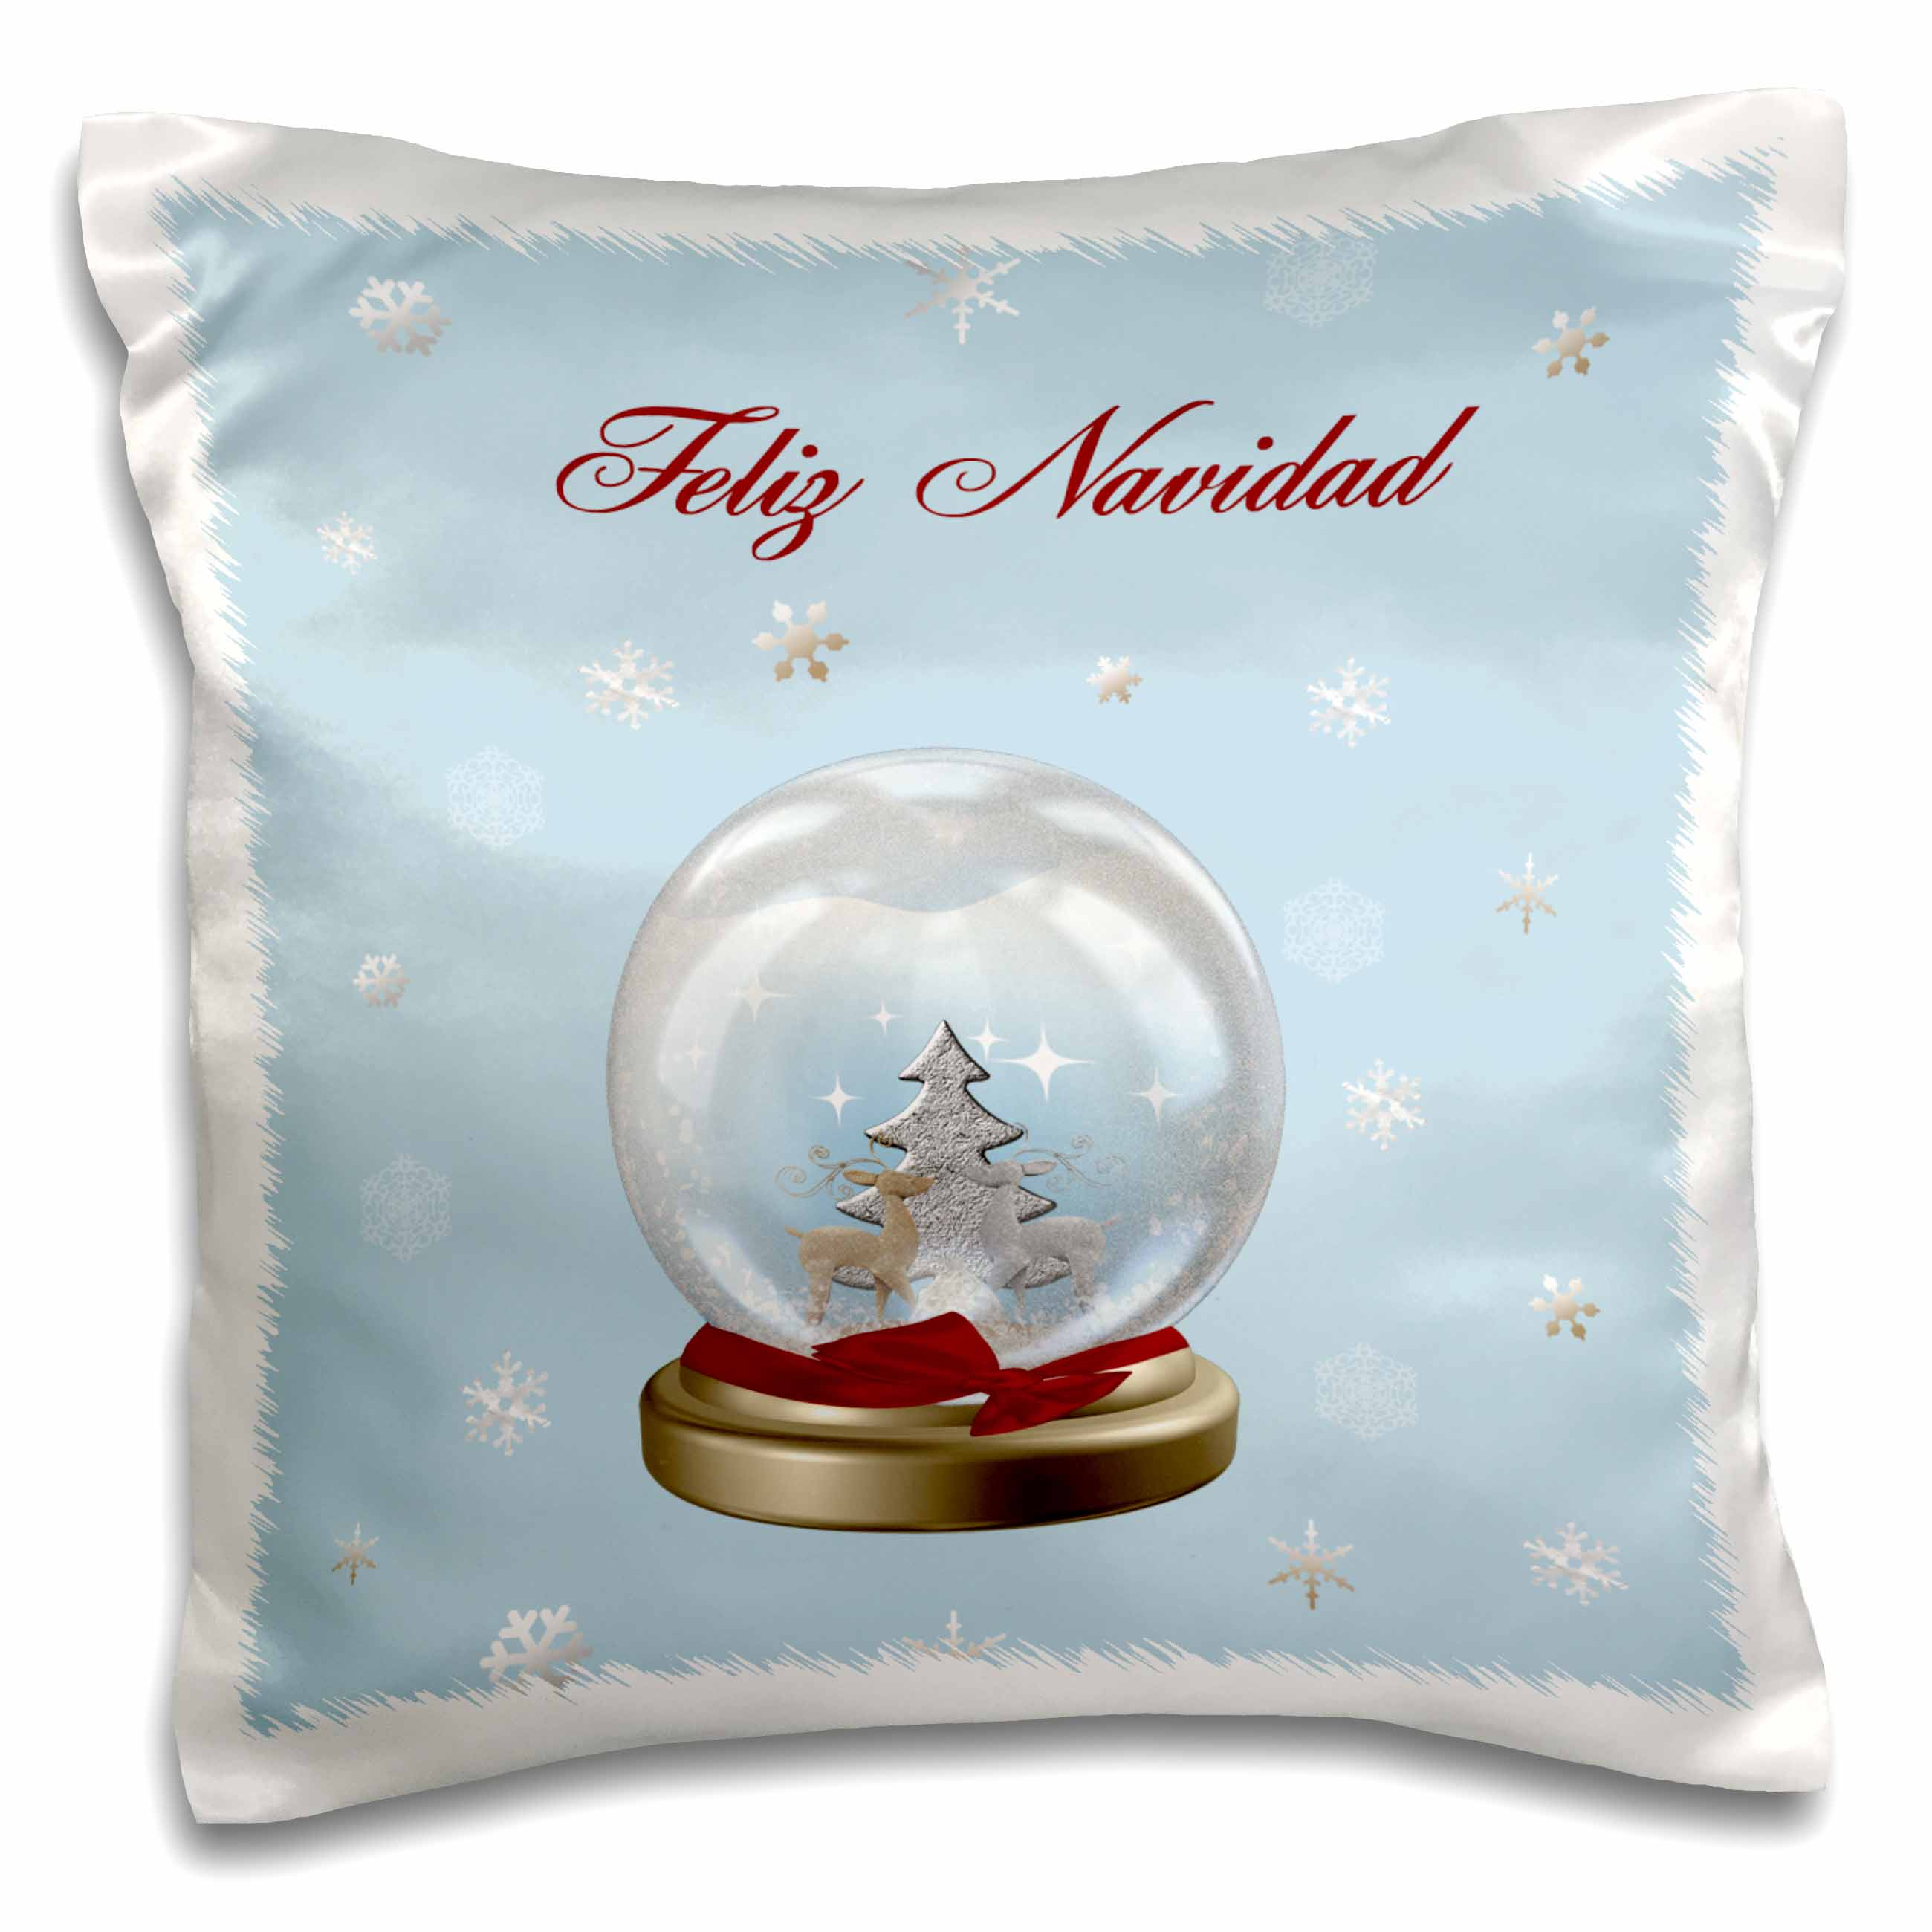 3dRose Snow Globe Deer, Tree and Snowflakes, Merry Christmas in Spanish, Pillow Case, 16 by 16-inch